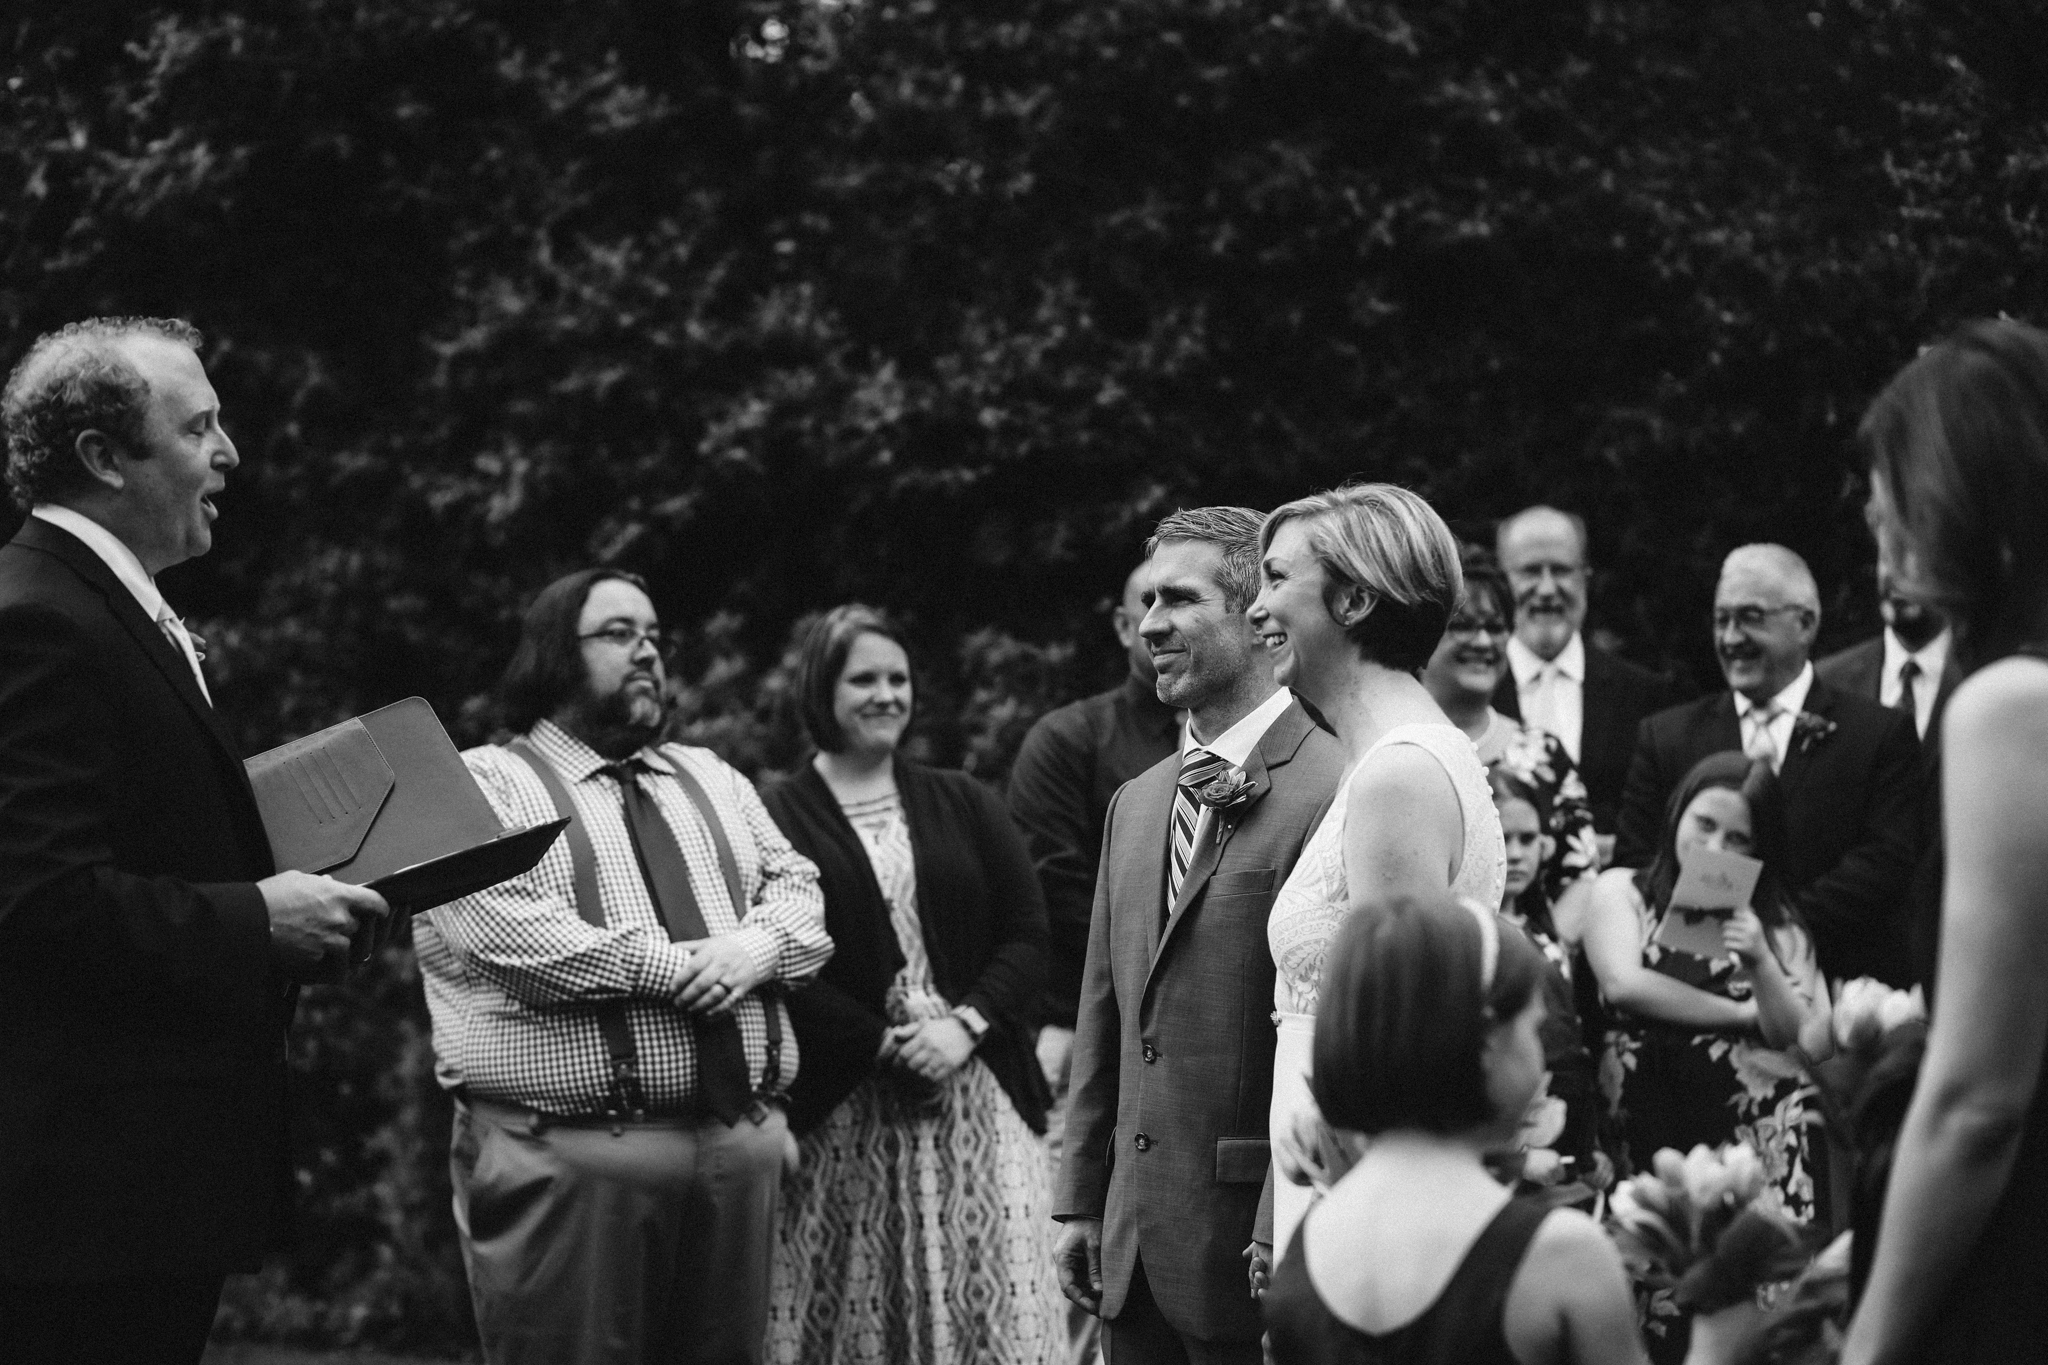 cook_wedding_richmond_virginia_rebecca_burt_photography-31.jpg